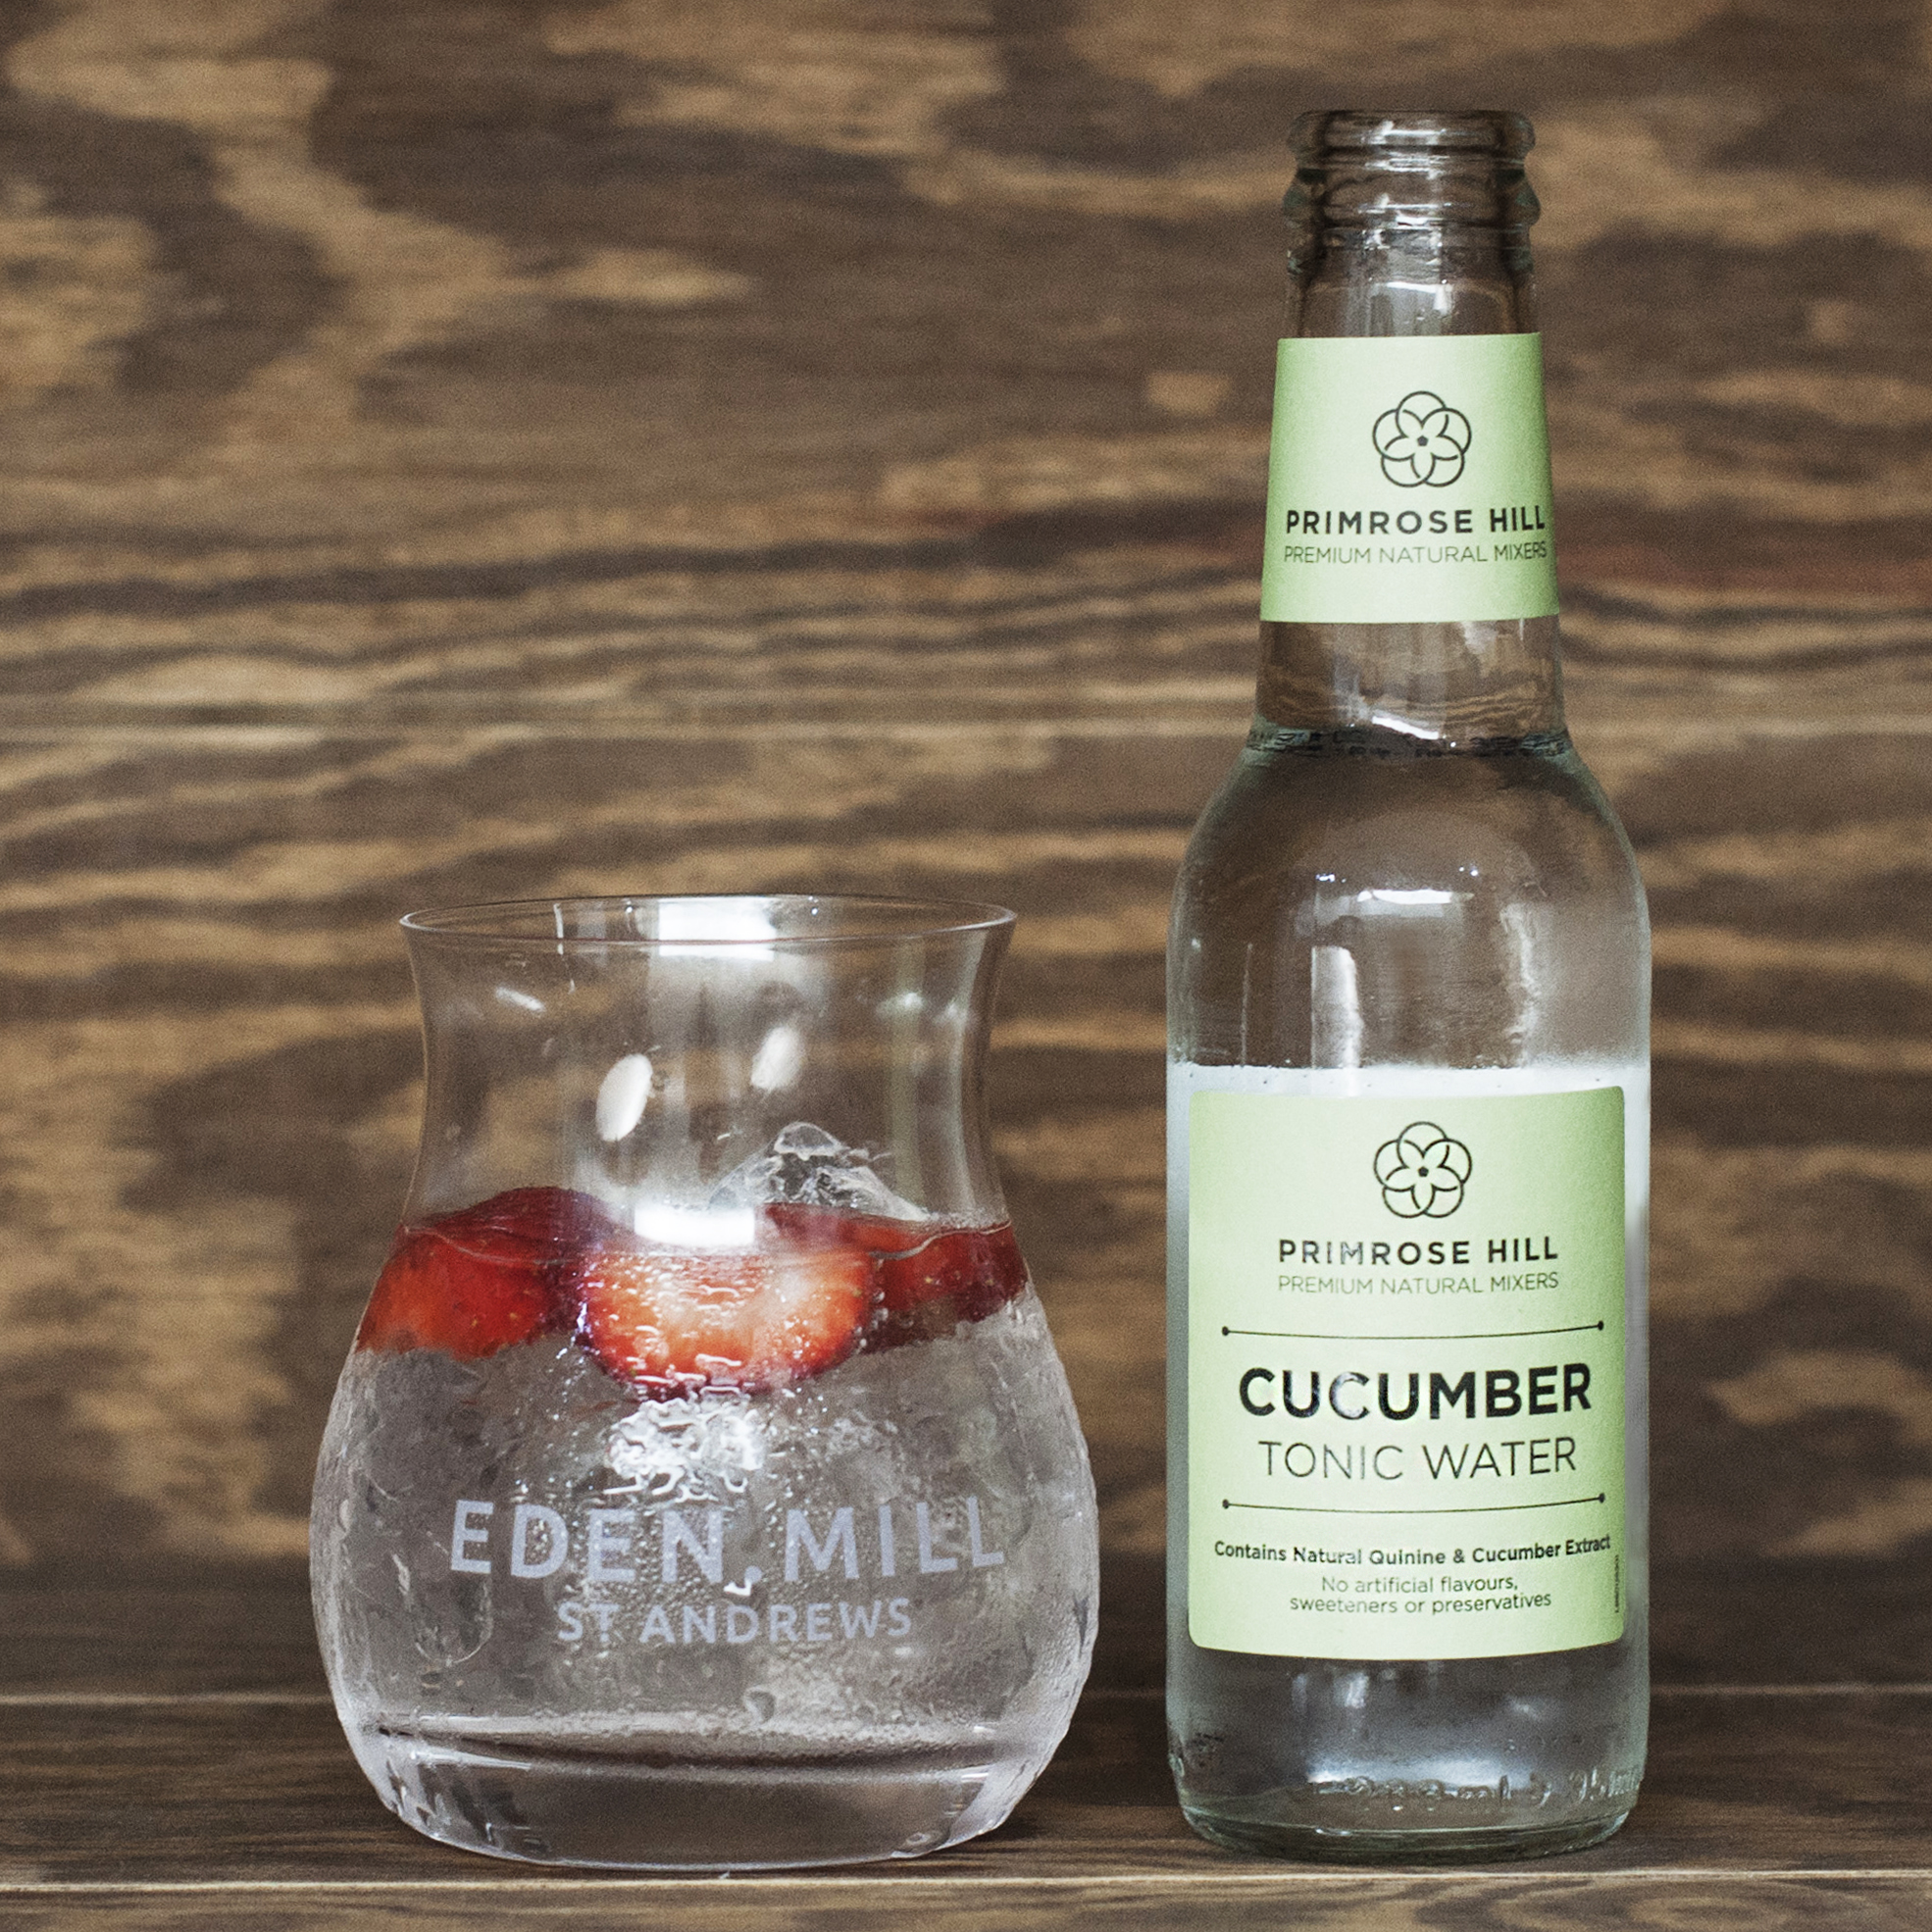 Cucumber Tonic Water | Eden Mill Distillery St Andrews